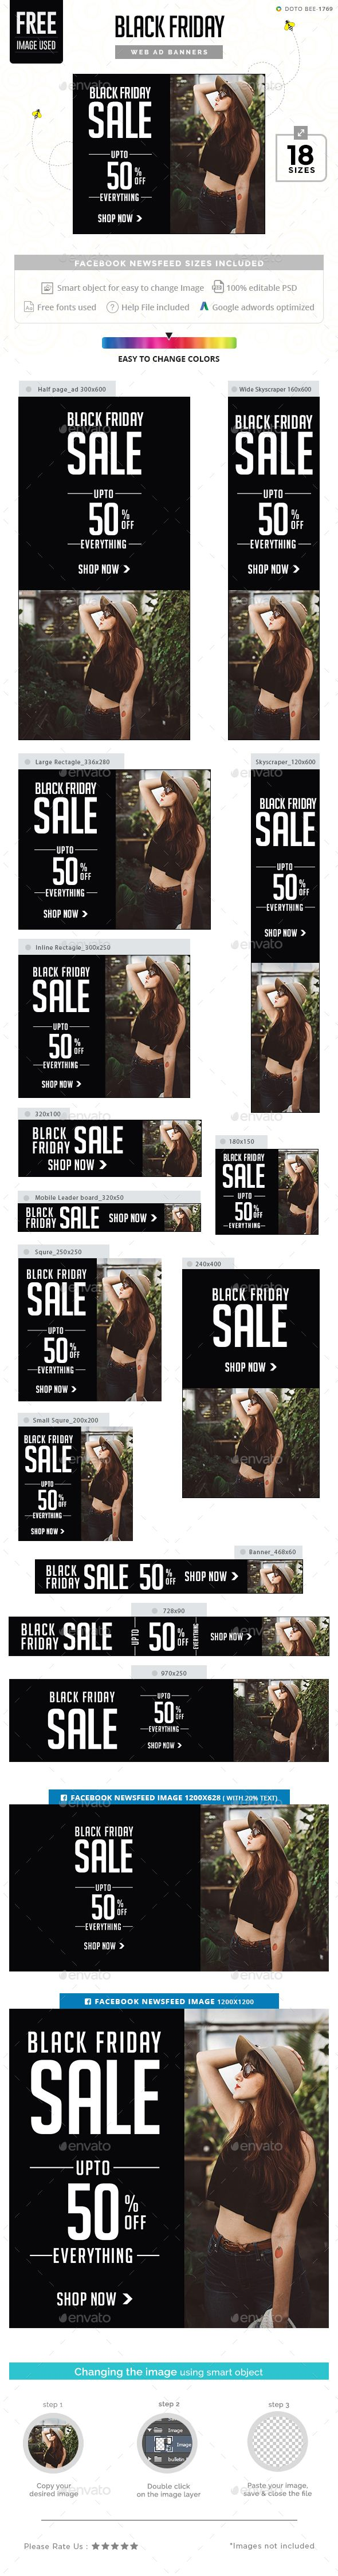 Black Friday Sale Banner Design Ads Template - Banners & Ads Web Elements Banner PSD Template. Download here: https://graphicriver.net/item/black-friday-sale-banners/18712498?ref=yinkira